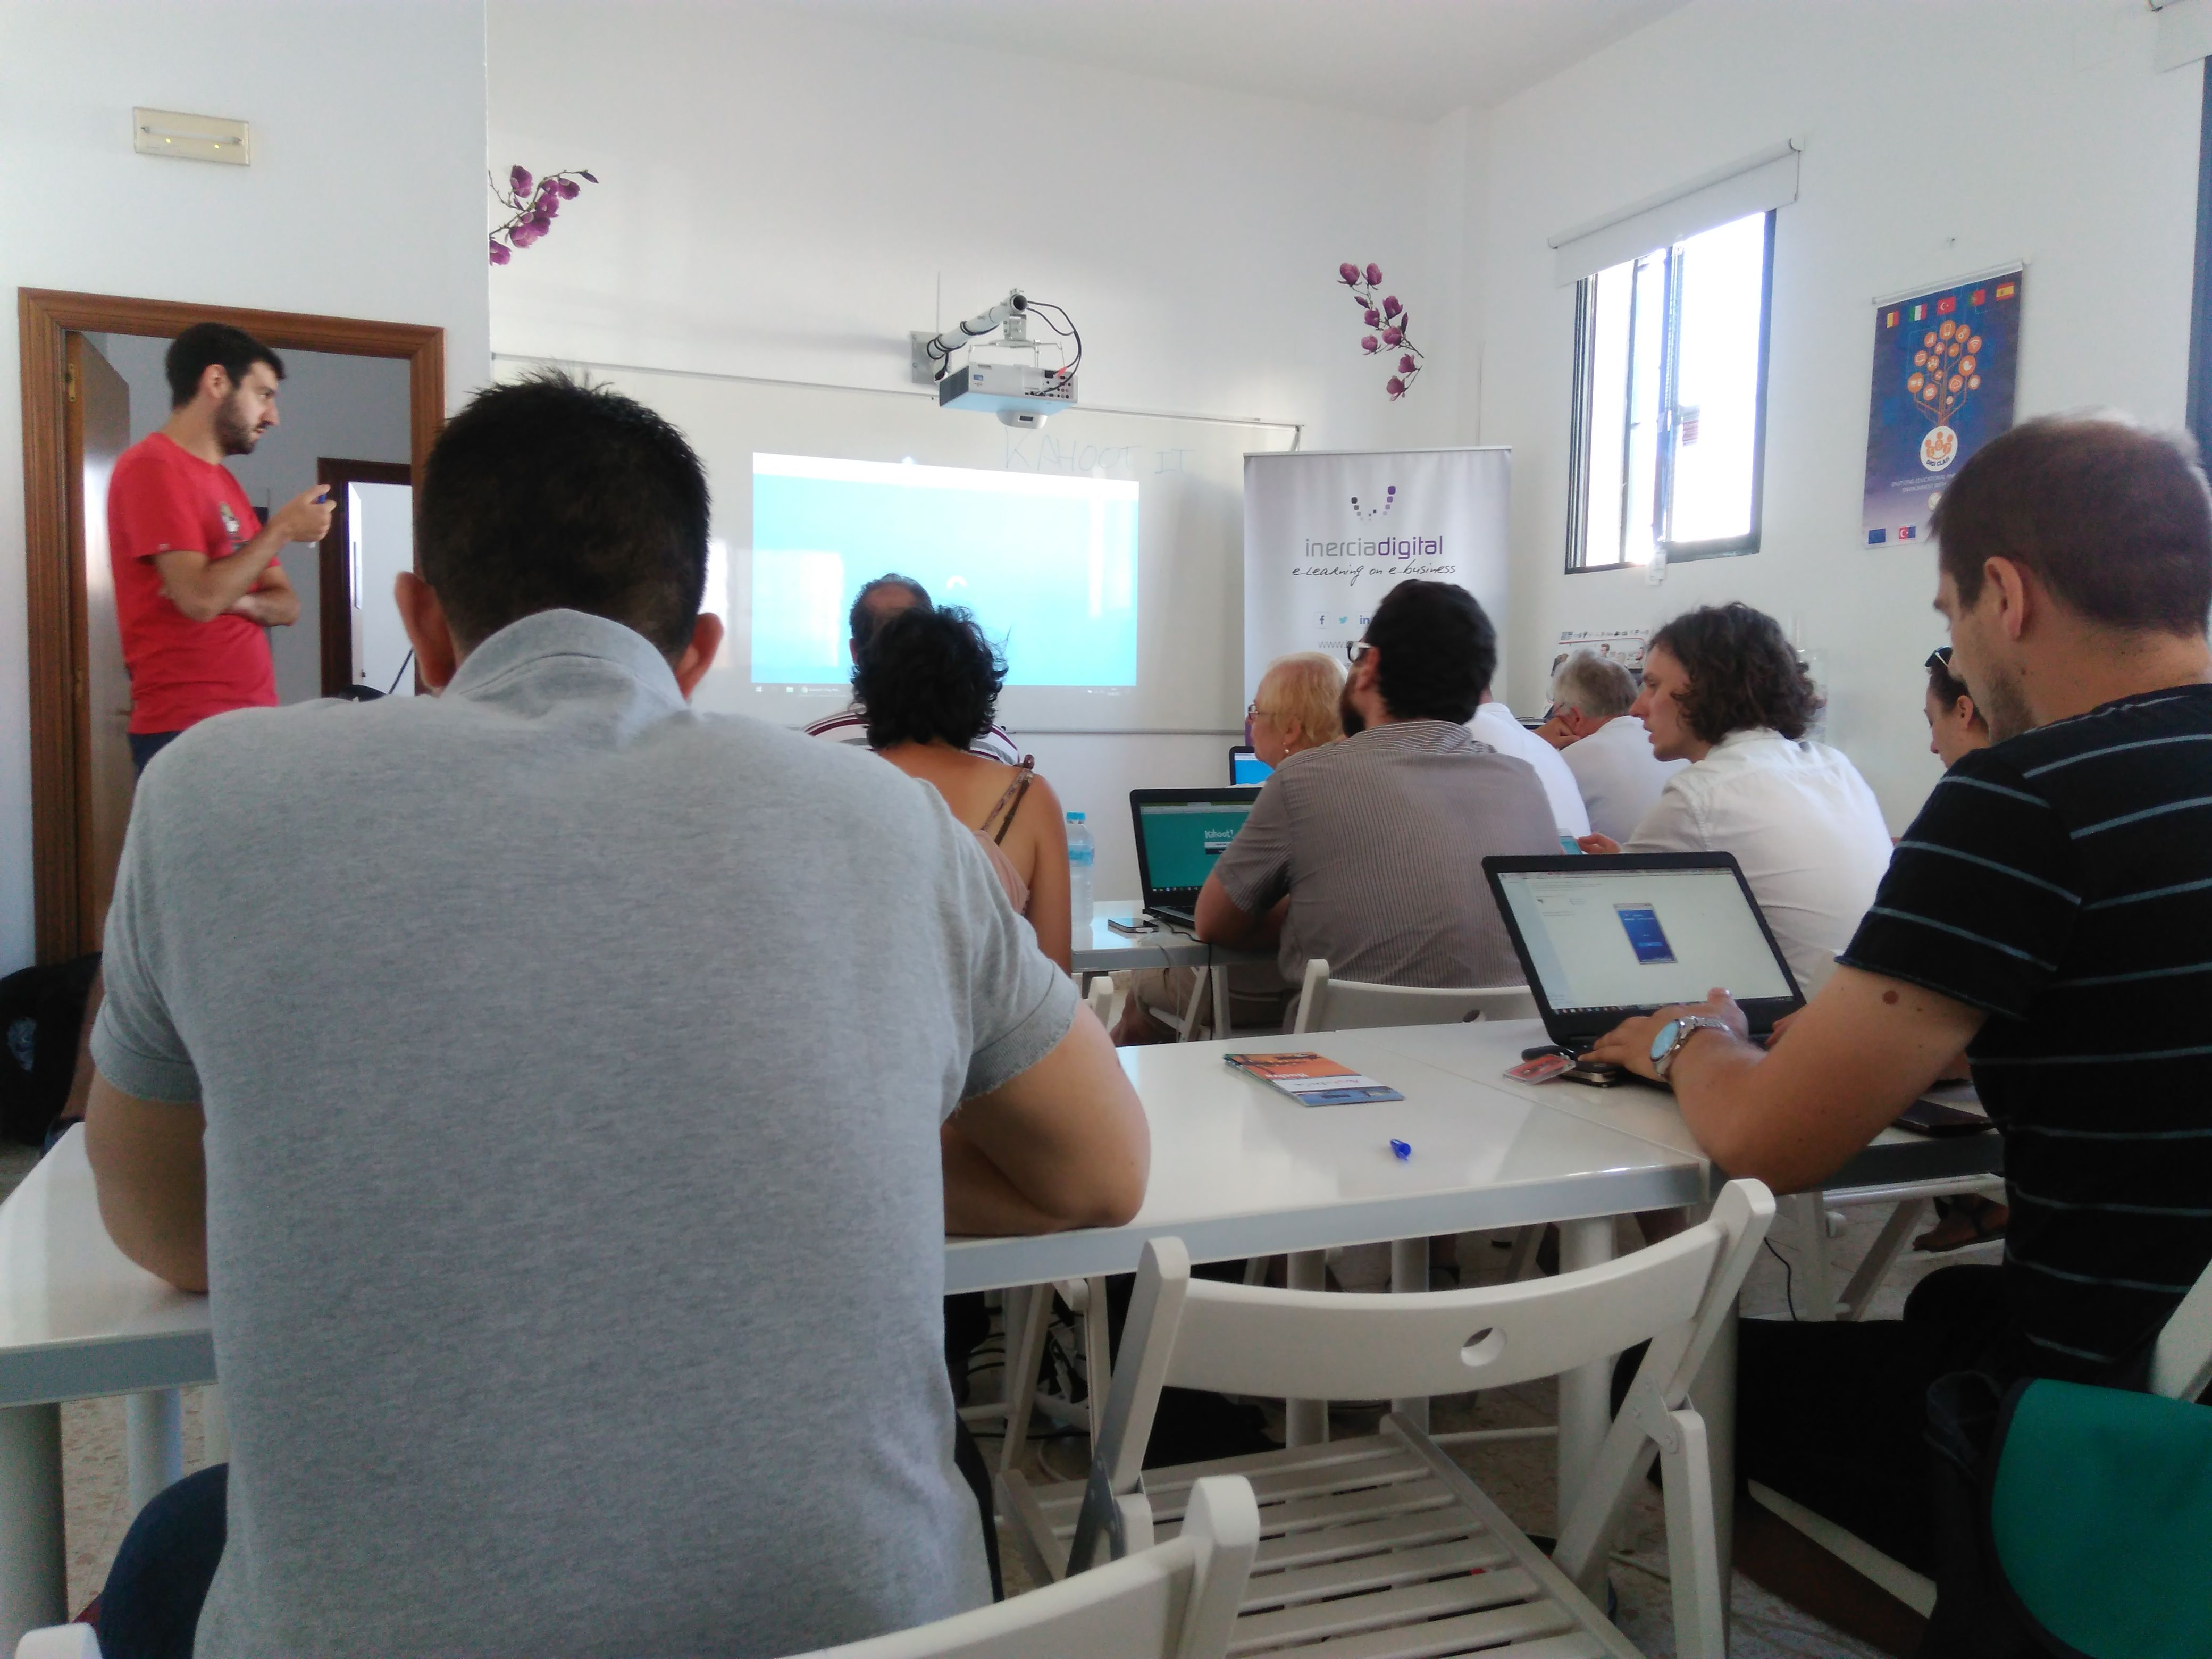 Inercia Digital organized a training course for an Erasmus+ KA2 project, Lifelong@Learning from June 13-17 in El Rompido for trainers and education staff from Macedonia, France, and Germany. LifeLong@Learning Project aims to promote the use of ICT in adult learning focusing on the application of ICT tools for distance learning